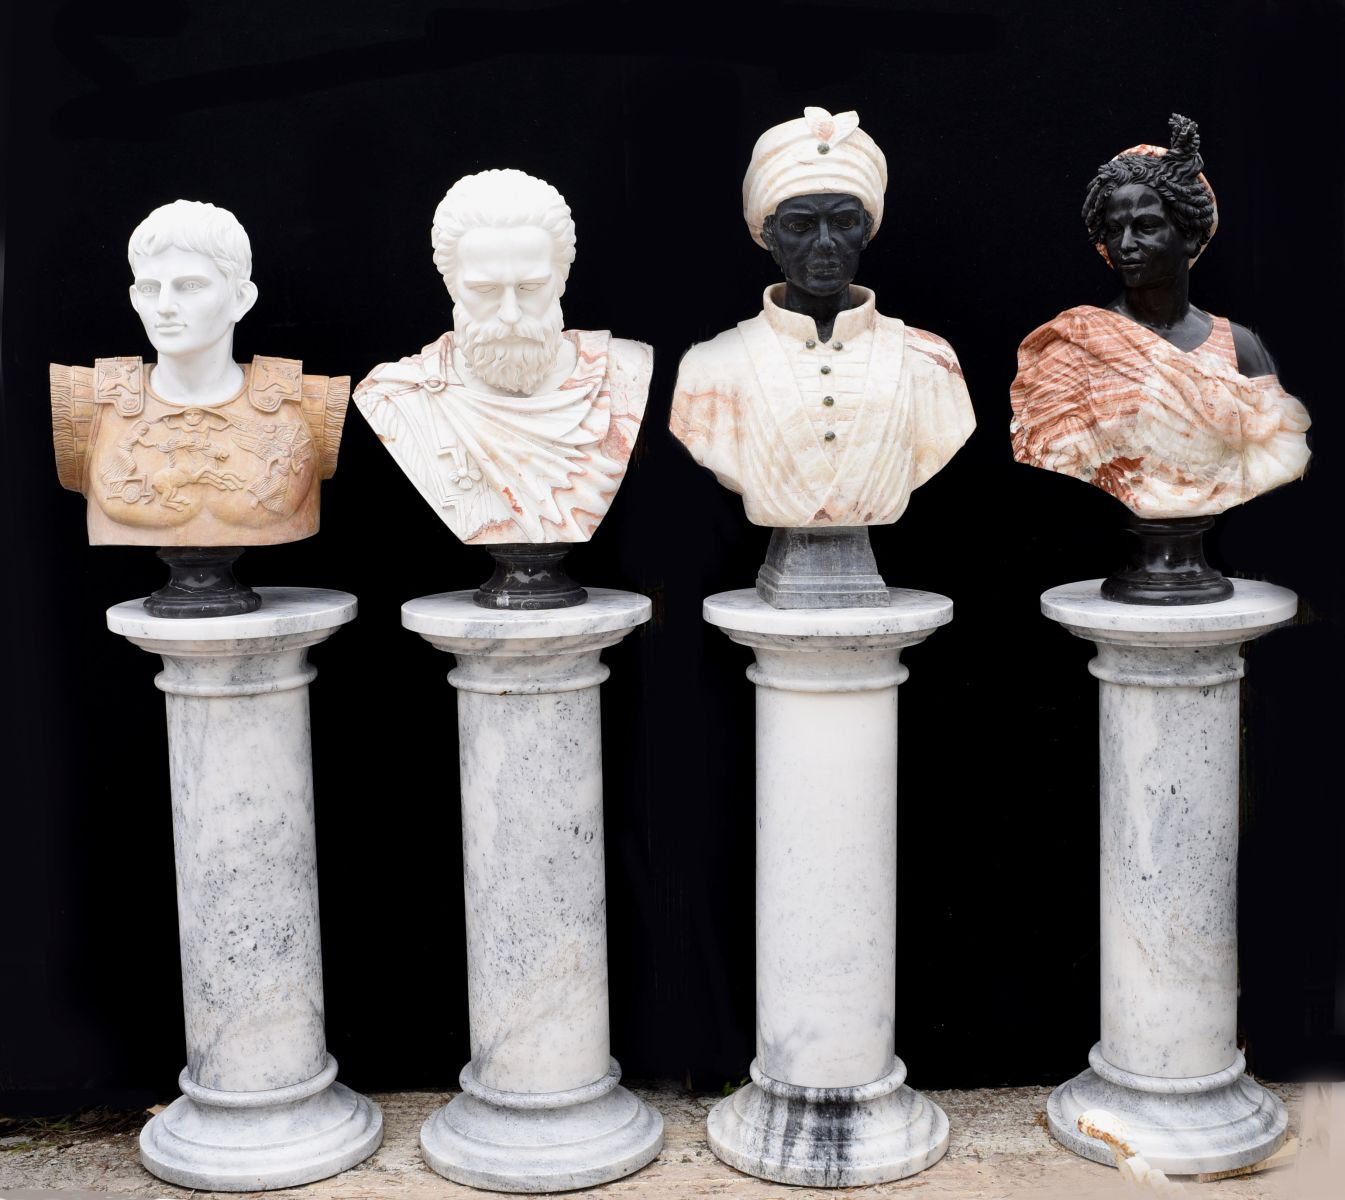 Marble busts for a classically inspired set